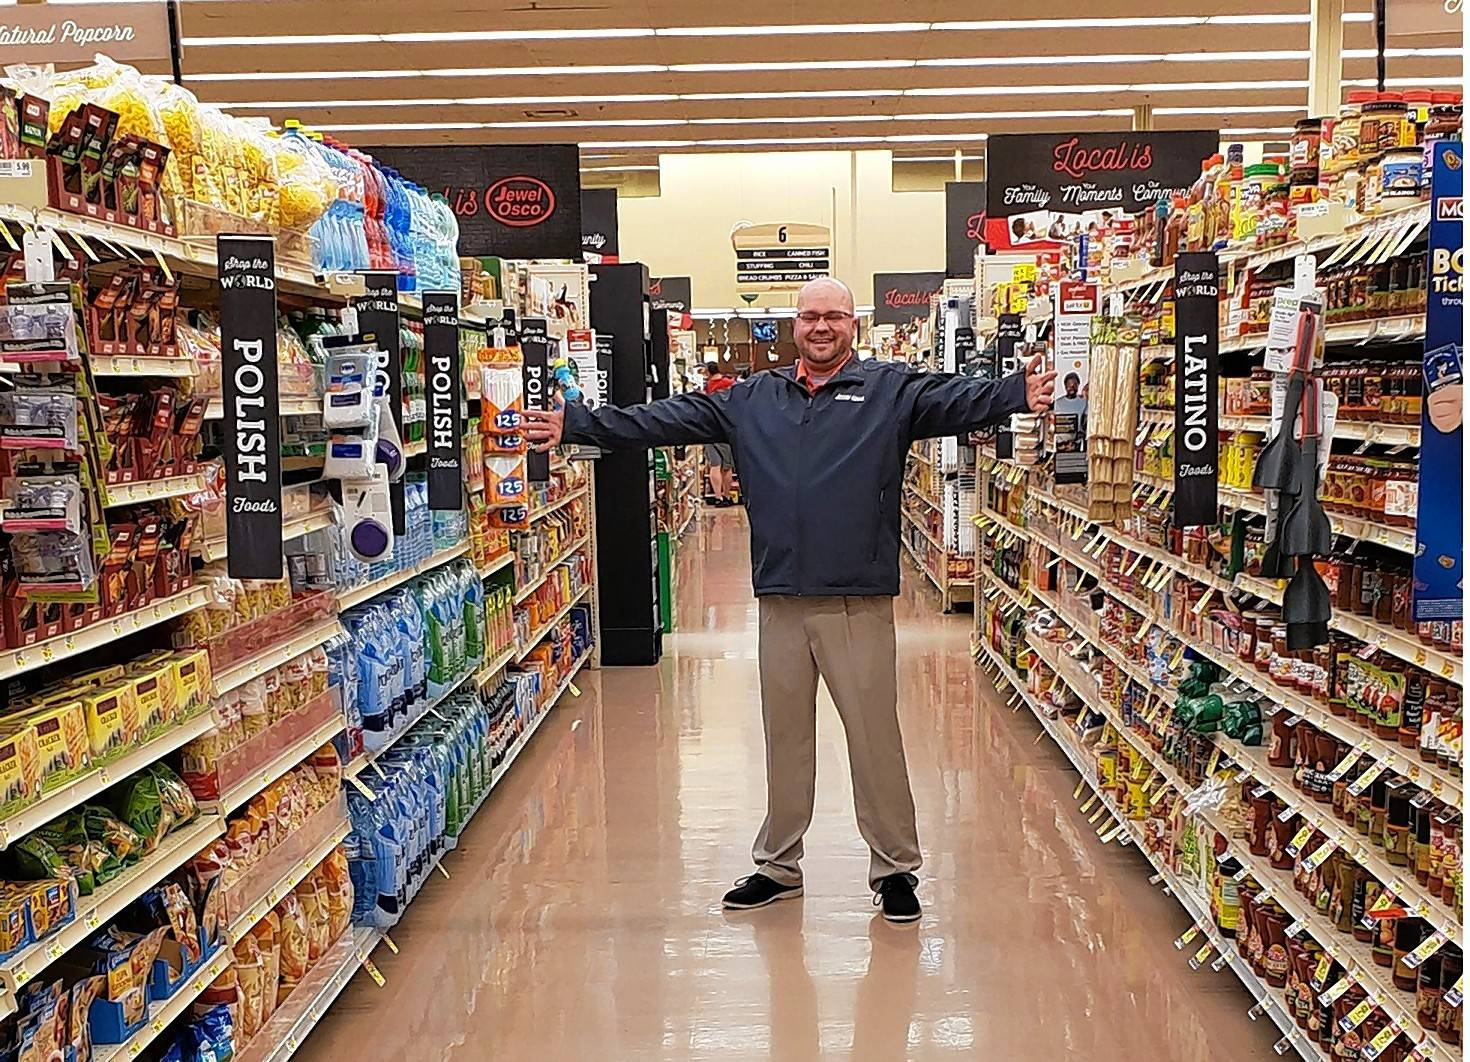 Michael Korkosz, Natural/Organic/Specialty/Health/Ethnic (NOSHE) Sales Manager for Jewel-Osco, shows the food from around the world offered at Jewel-Osco.